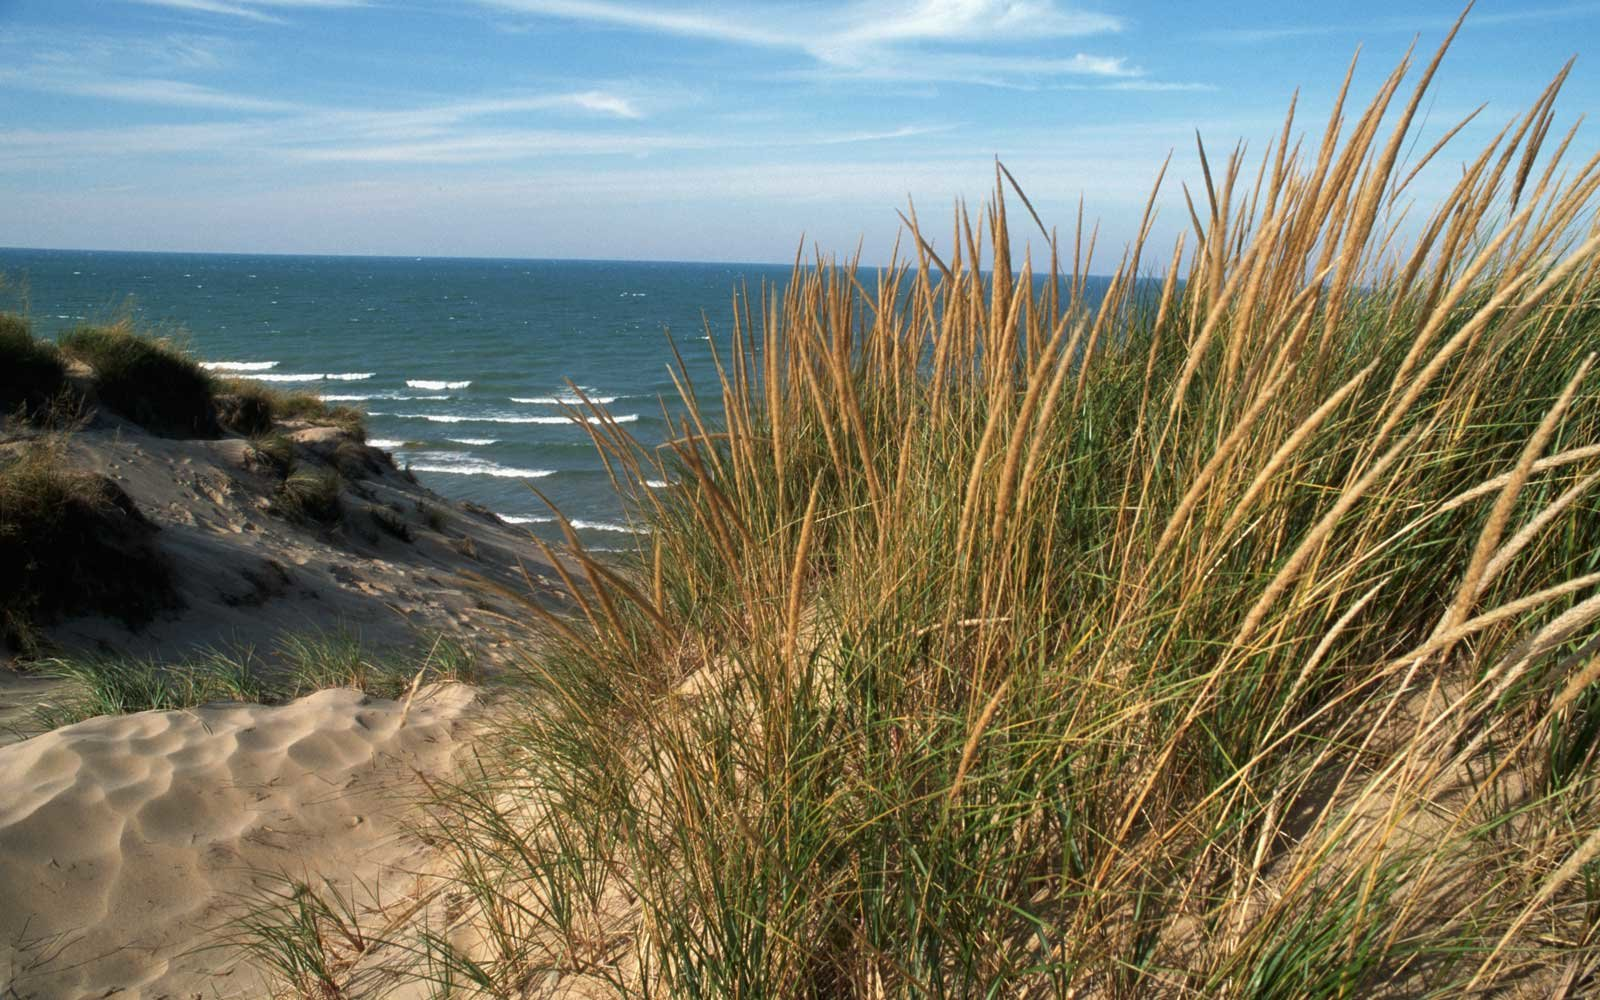 Grass at Indiana Dunes National Park